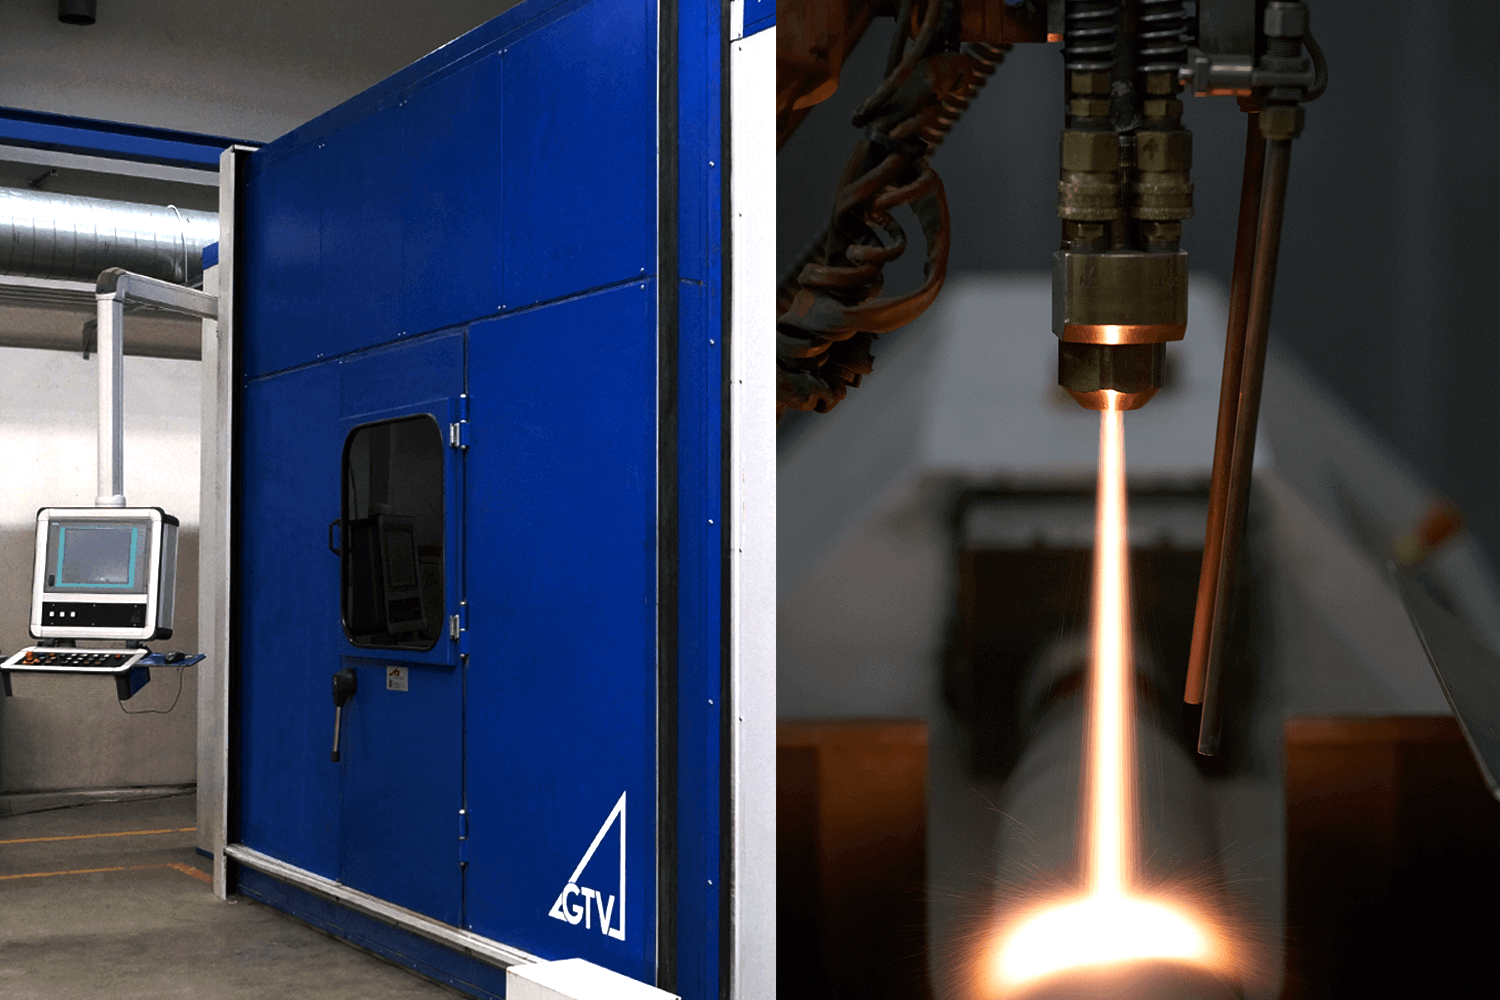 New coating machine expands production capacity by 25%